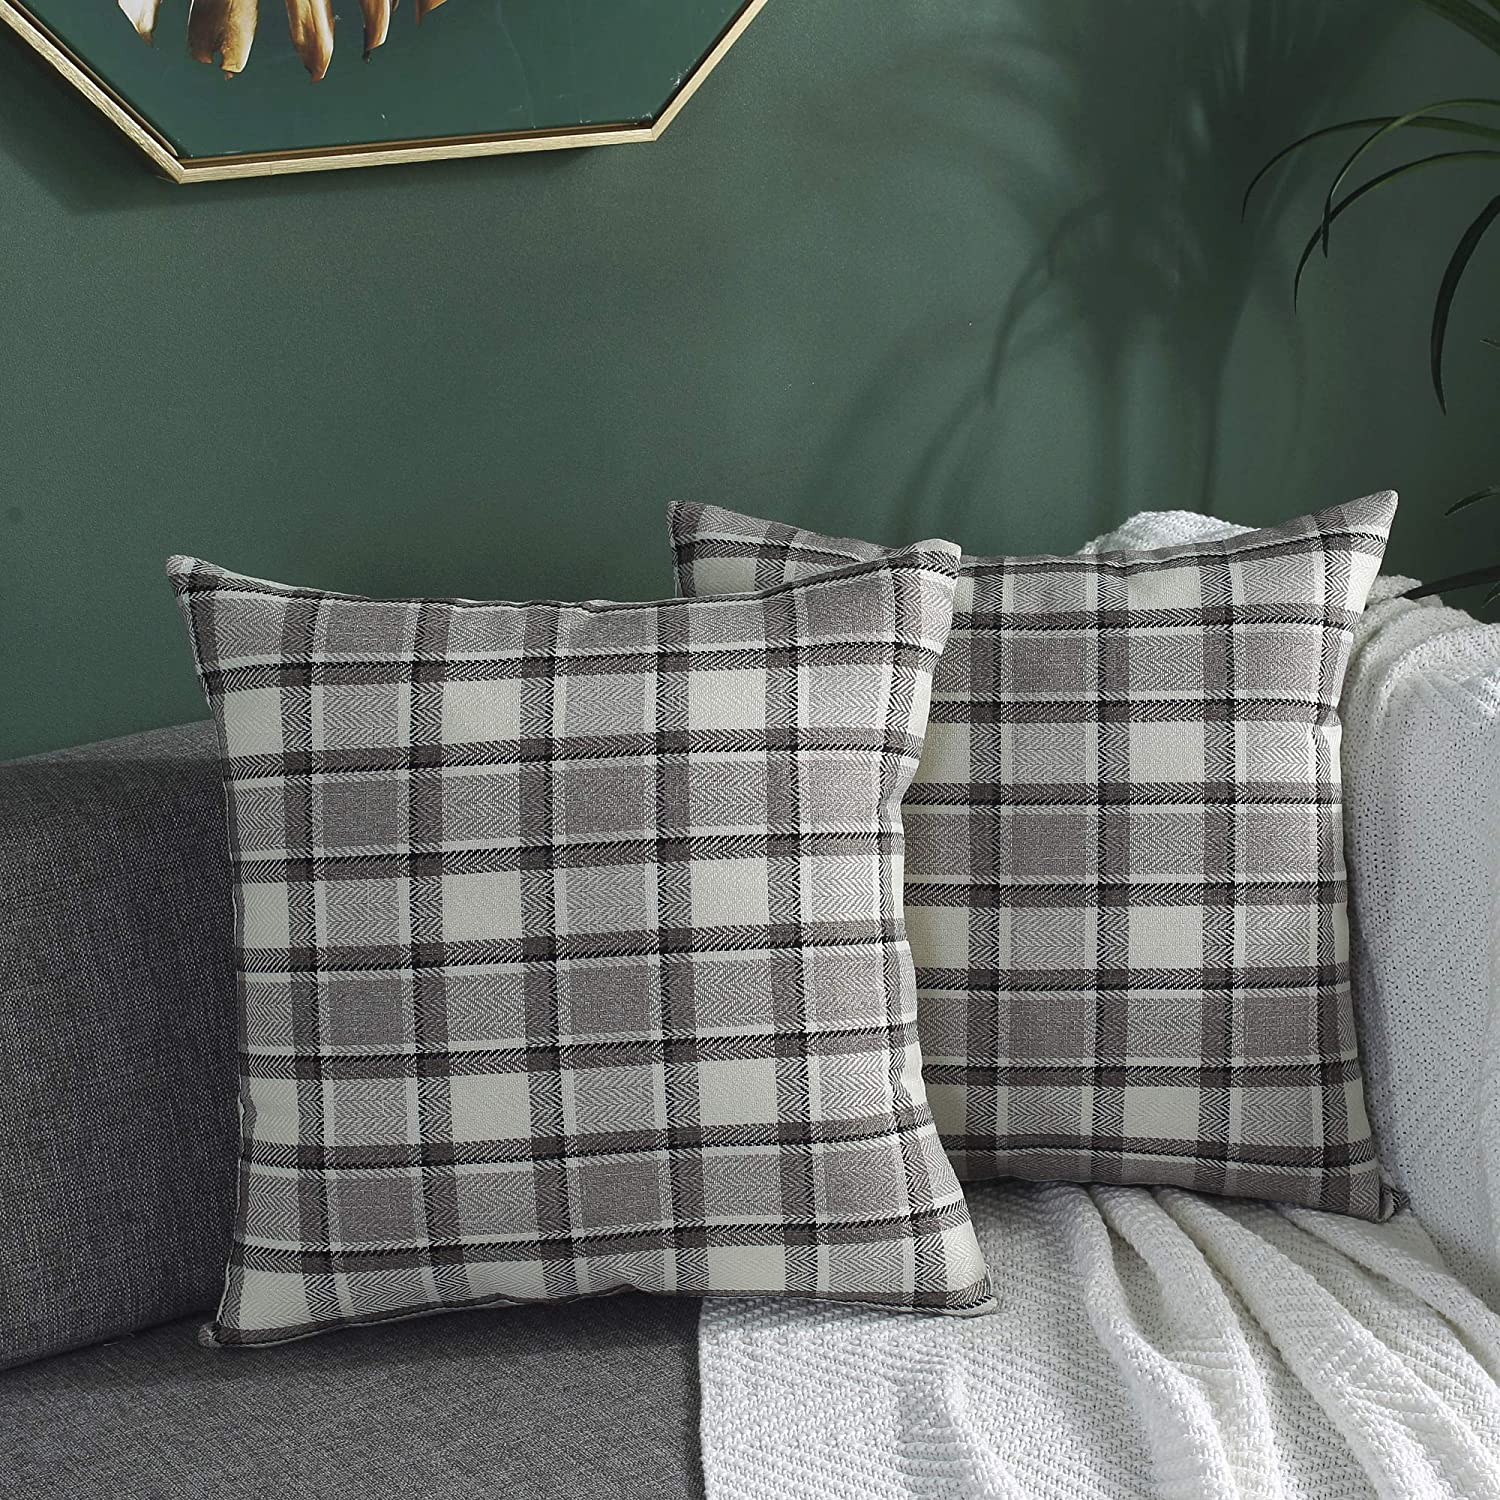 TAOSON Set of 2,Classic Retro Checkers Plaids Lined Linen Burlap Square Deco Throw Cushion Cover Pillow Cover Pillowcase with Hidden Zipper Closure Only Cover No Insert 24